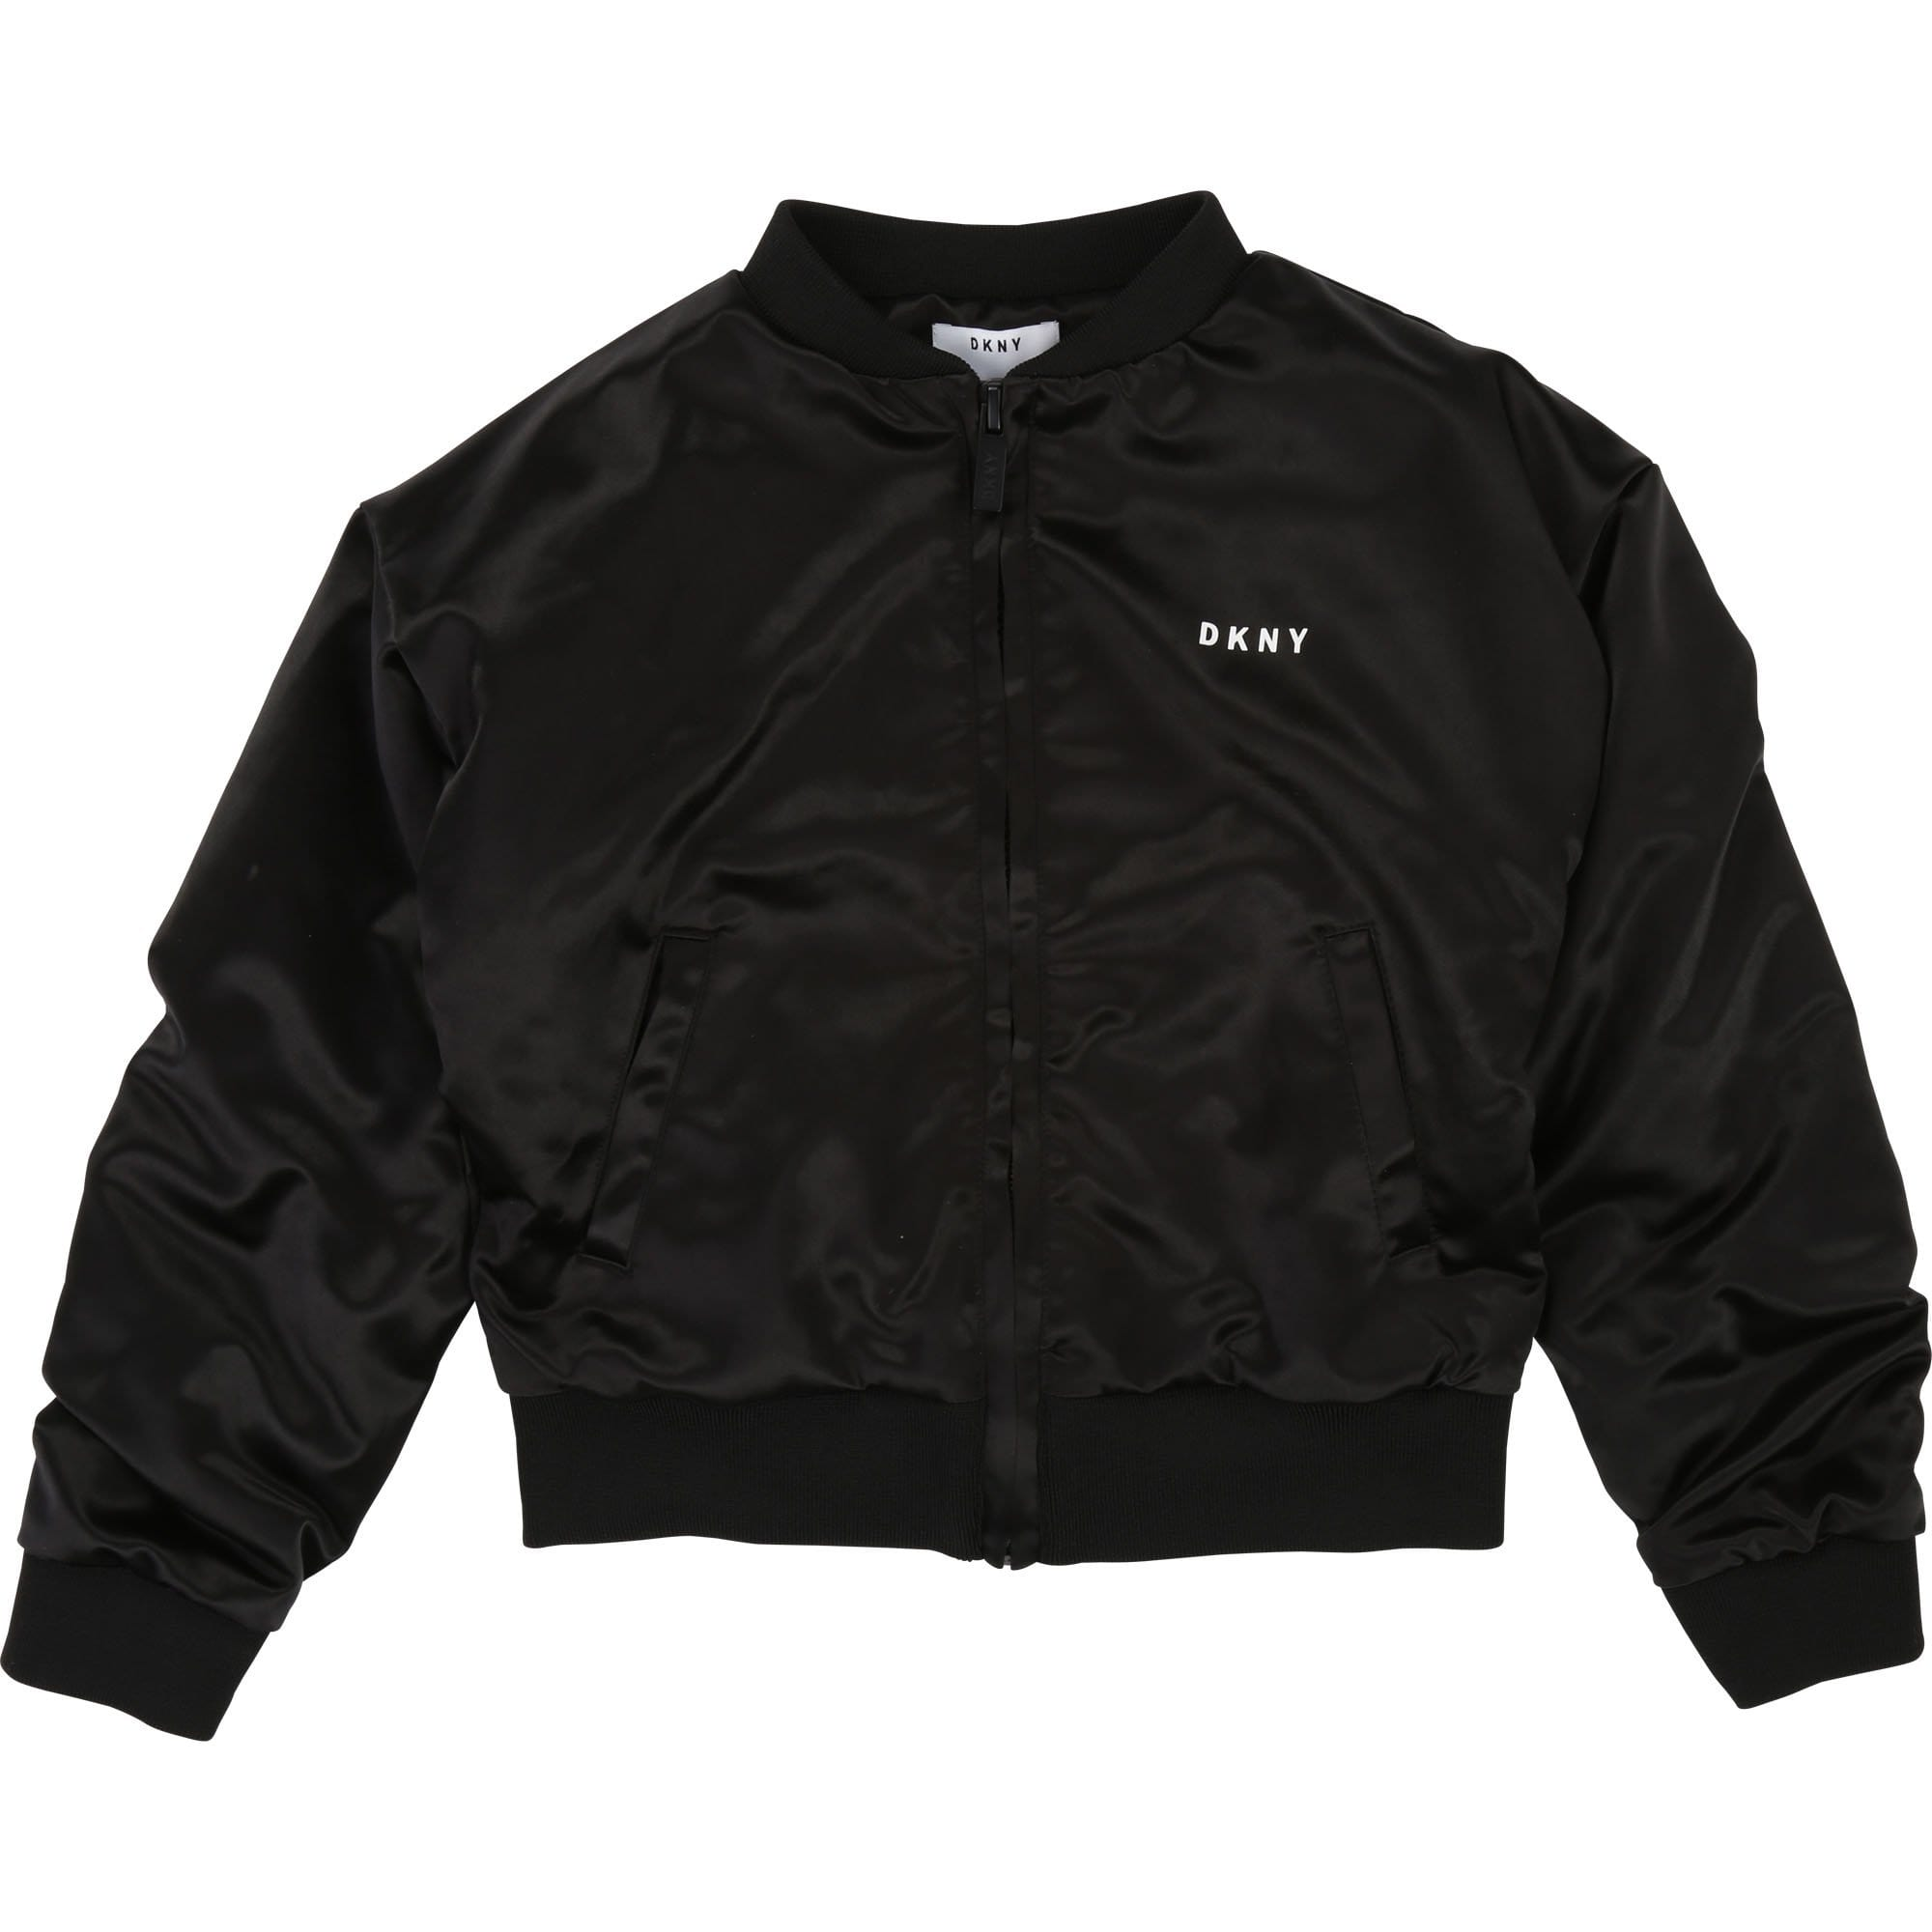 DKNY Girls Bomber Jacket (4716440715395)